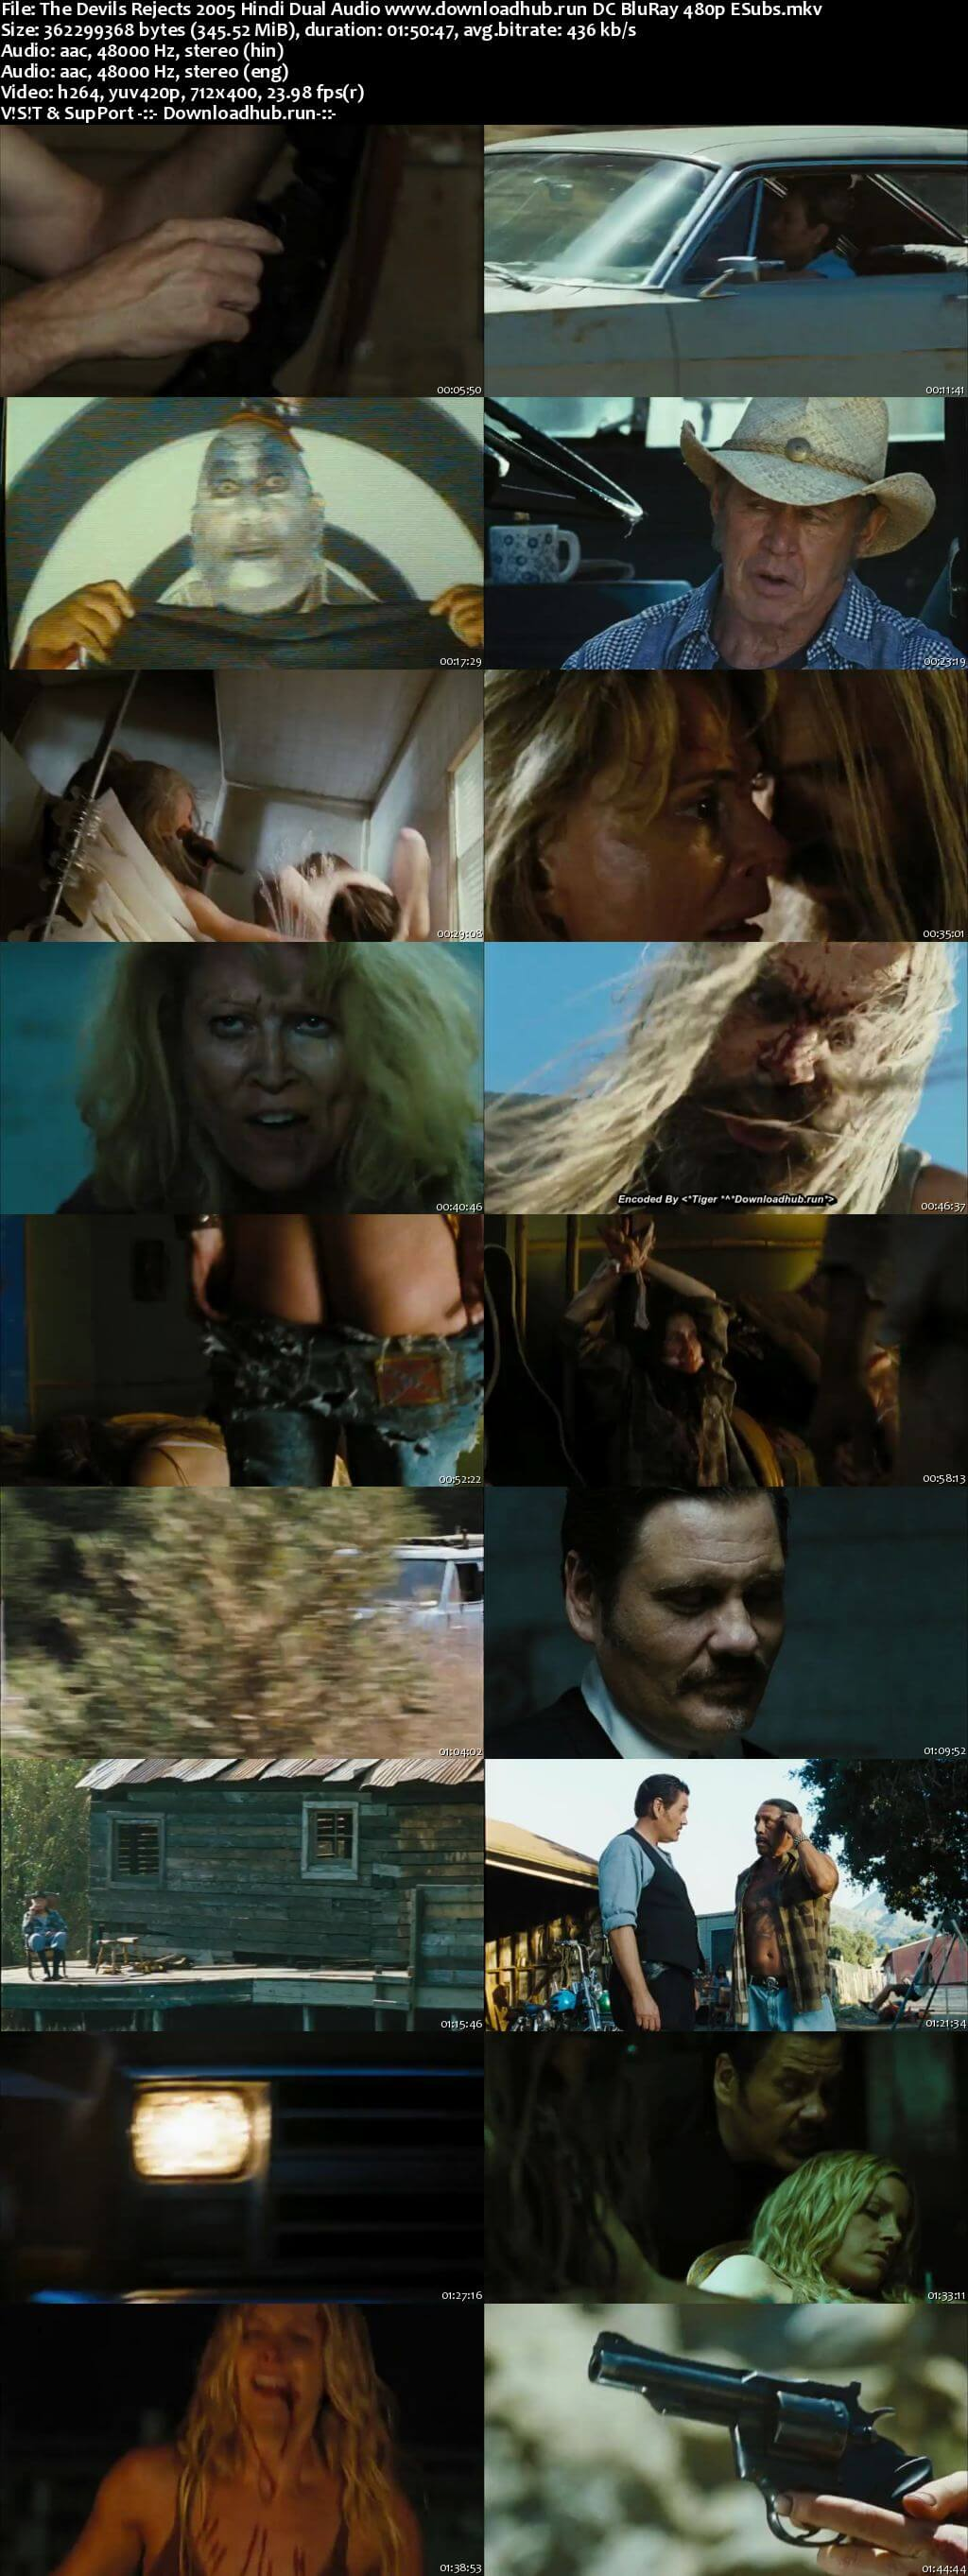 The Devils Rejects 2005 Hindi Dual Audio 350MB DC BluRay 480p ESubs